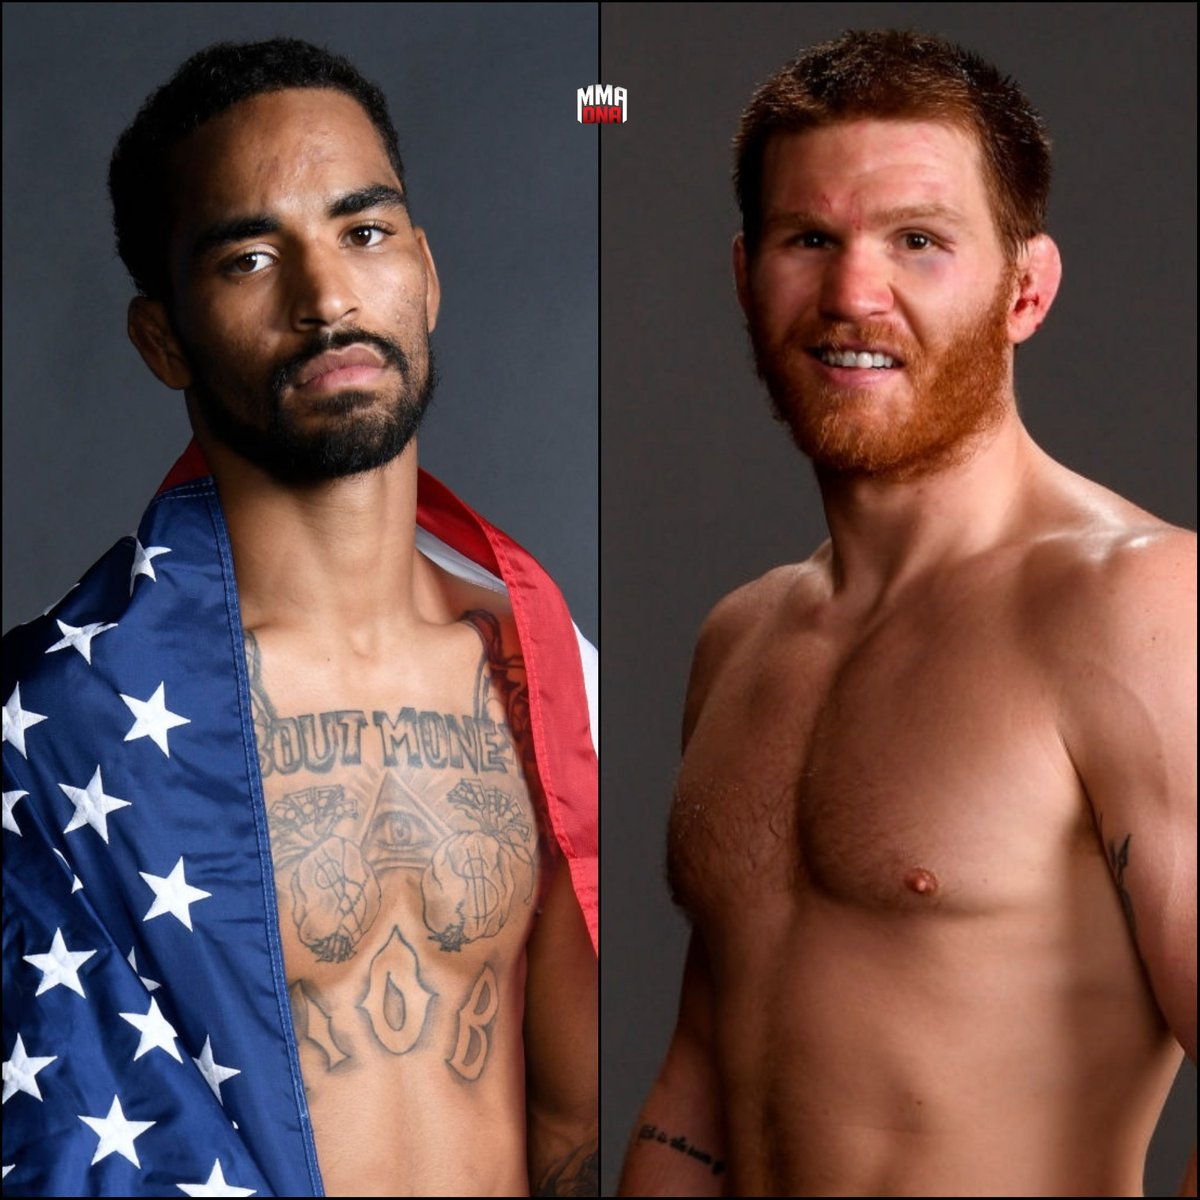 Roosevelt Roberts will fight Matt Frevola at UFC event on September 12th. (per @MattFre16) #UFC #MMA #UFCESPN https://t.co/sFu8Qhh5x7